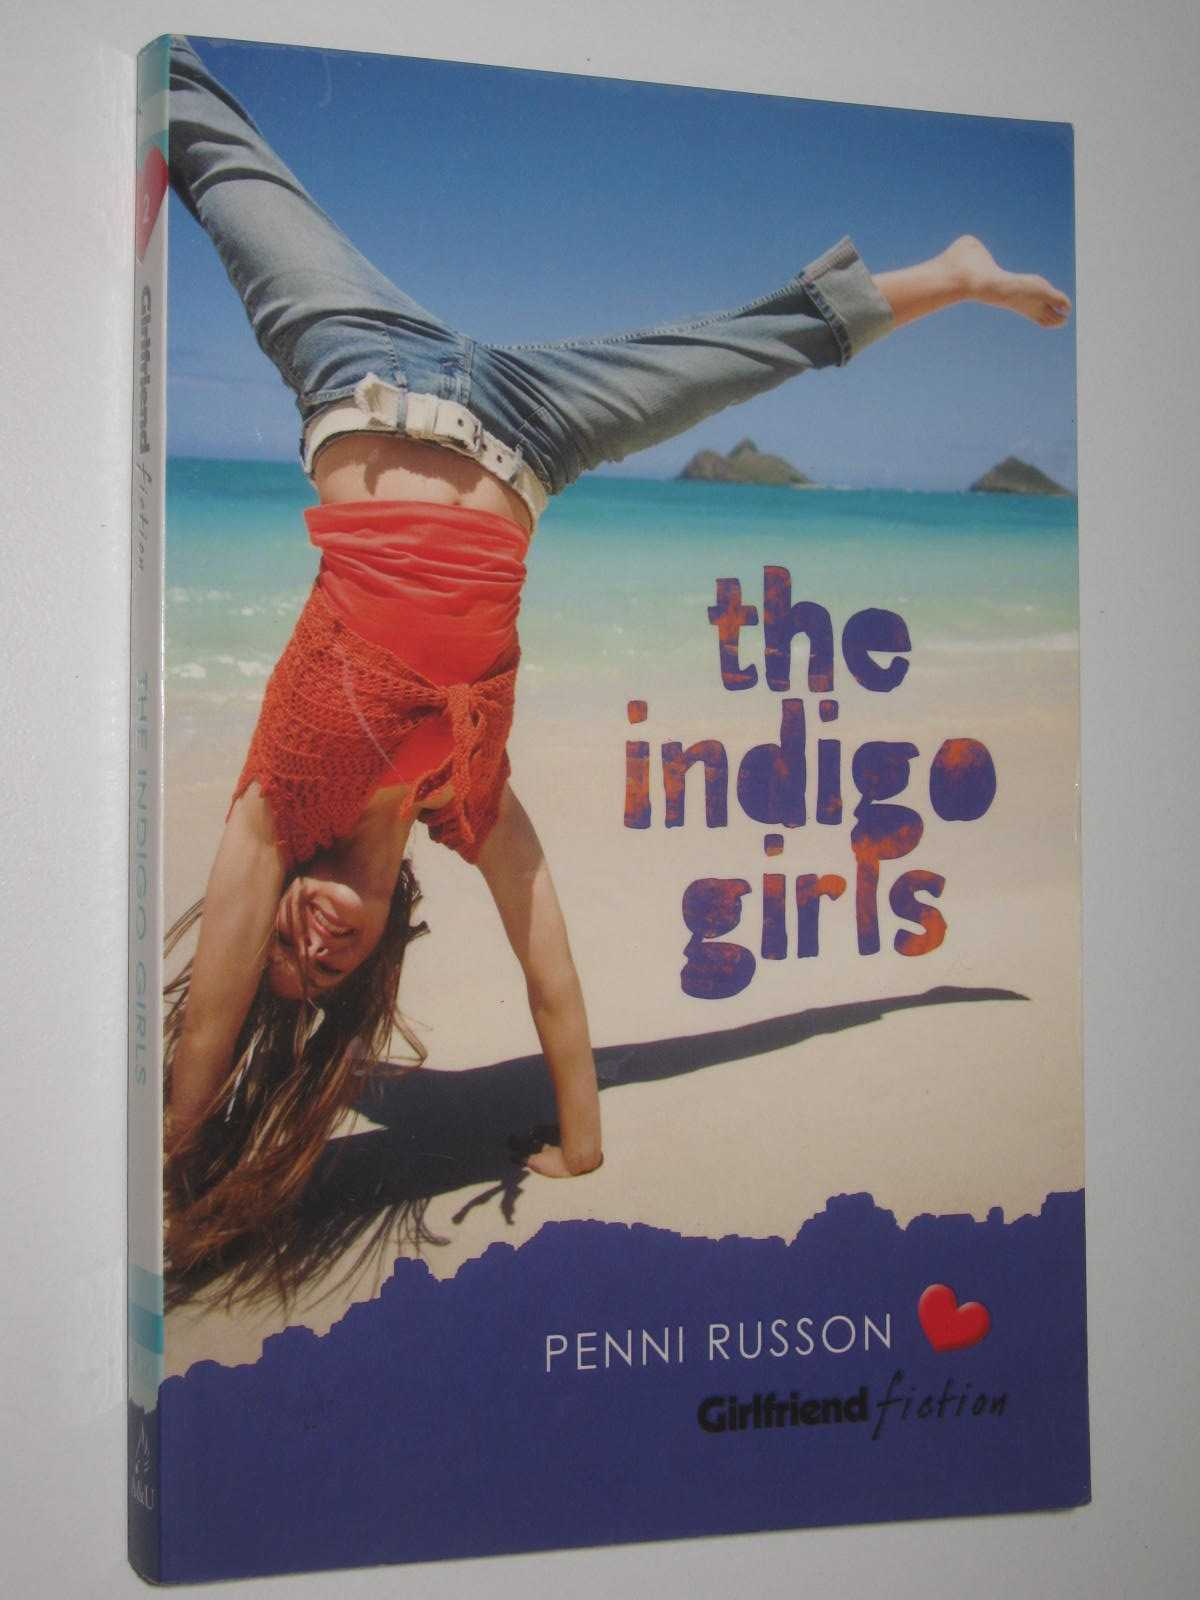 Image for The Indigo Girls - Girlfriend Fiction Series #2